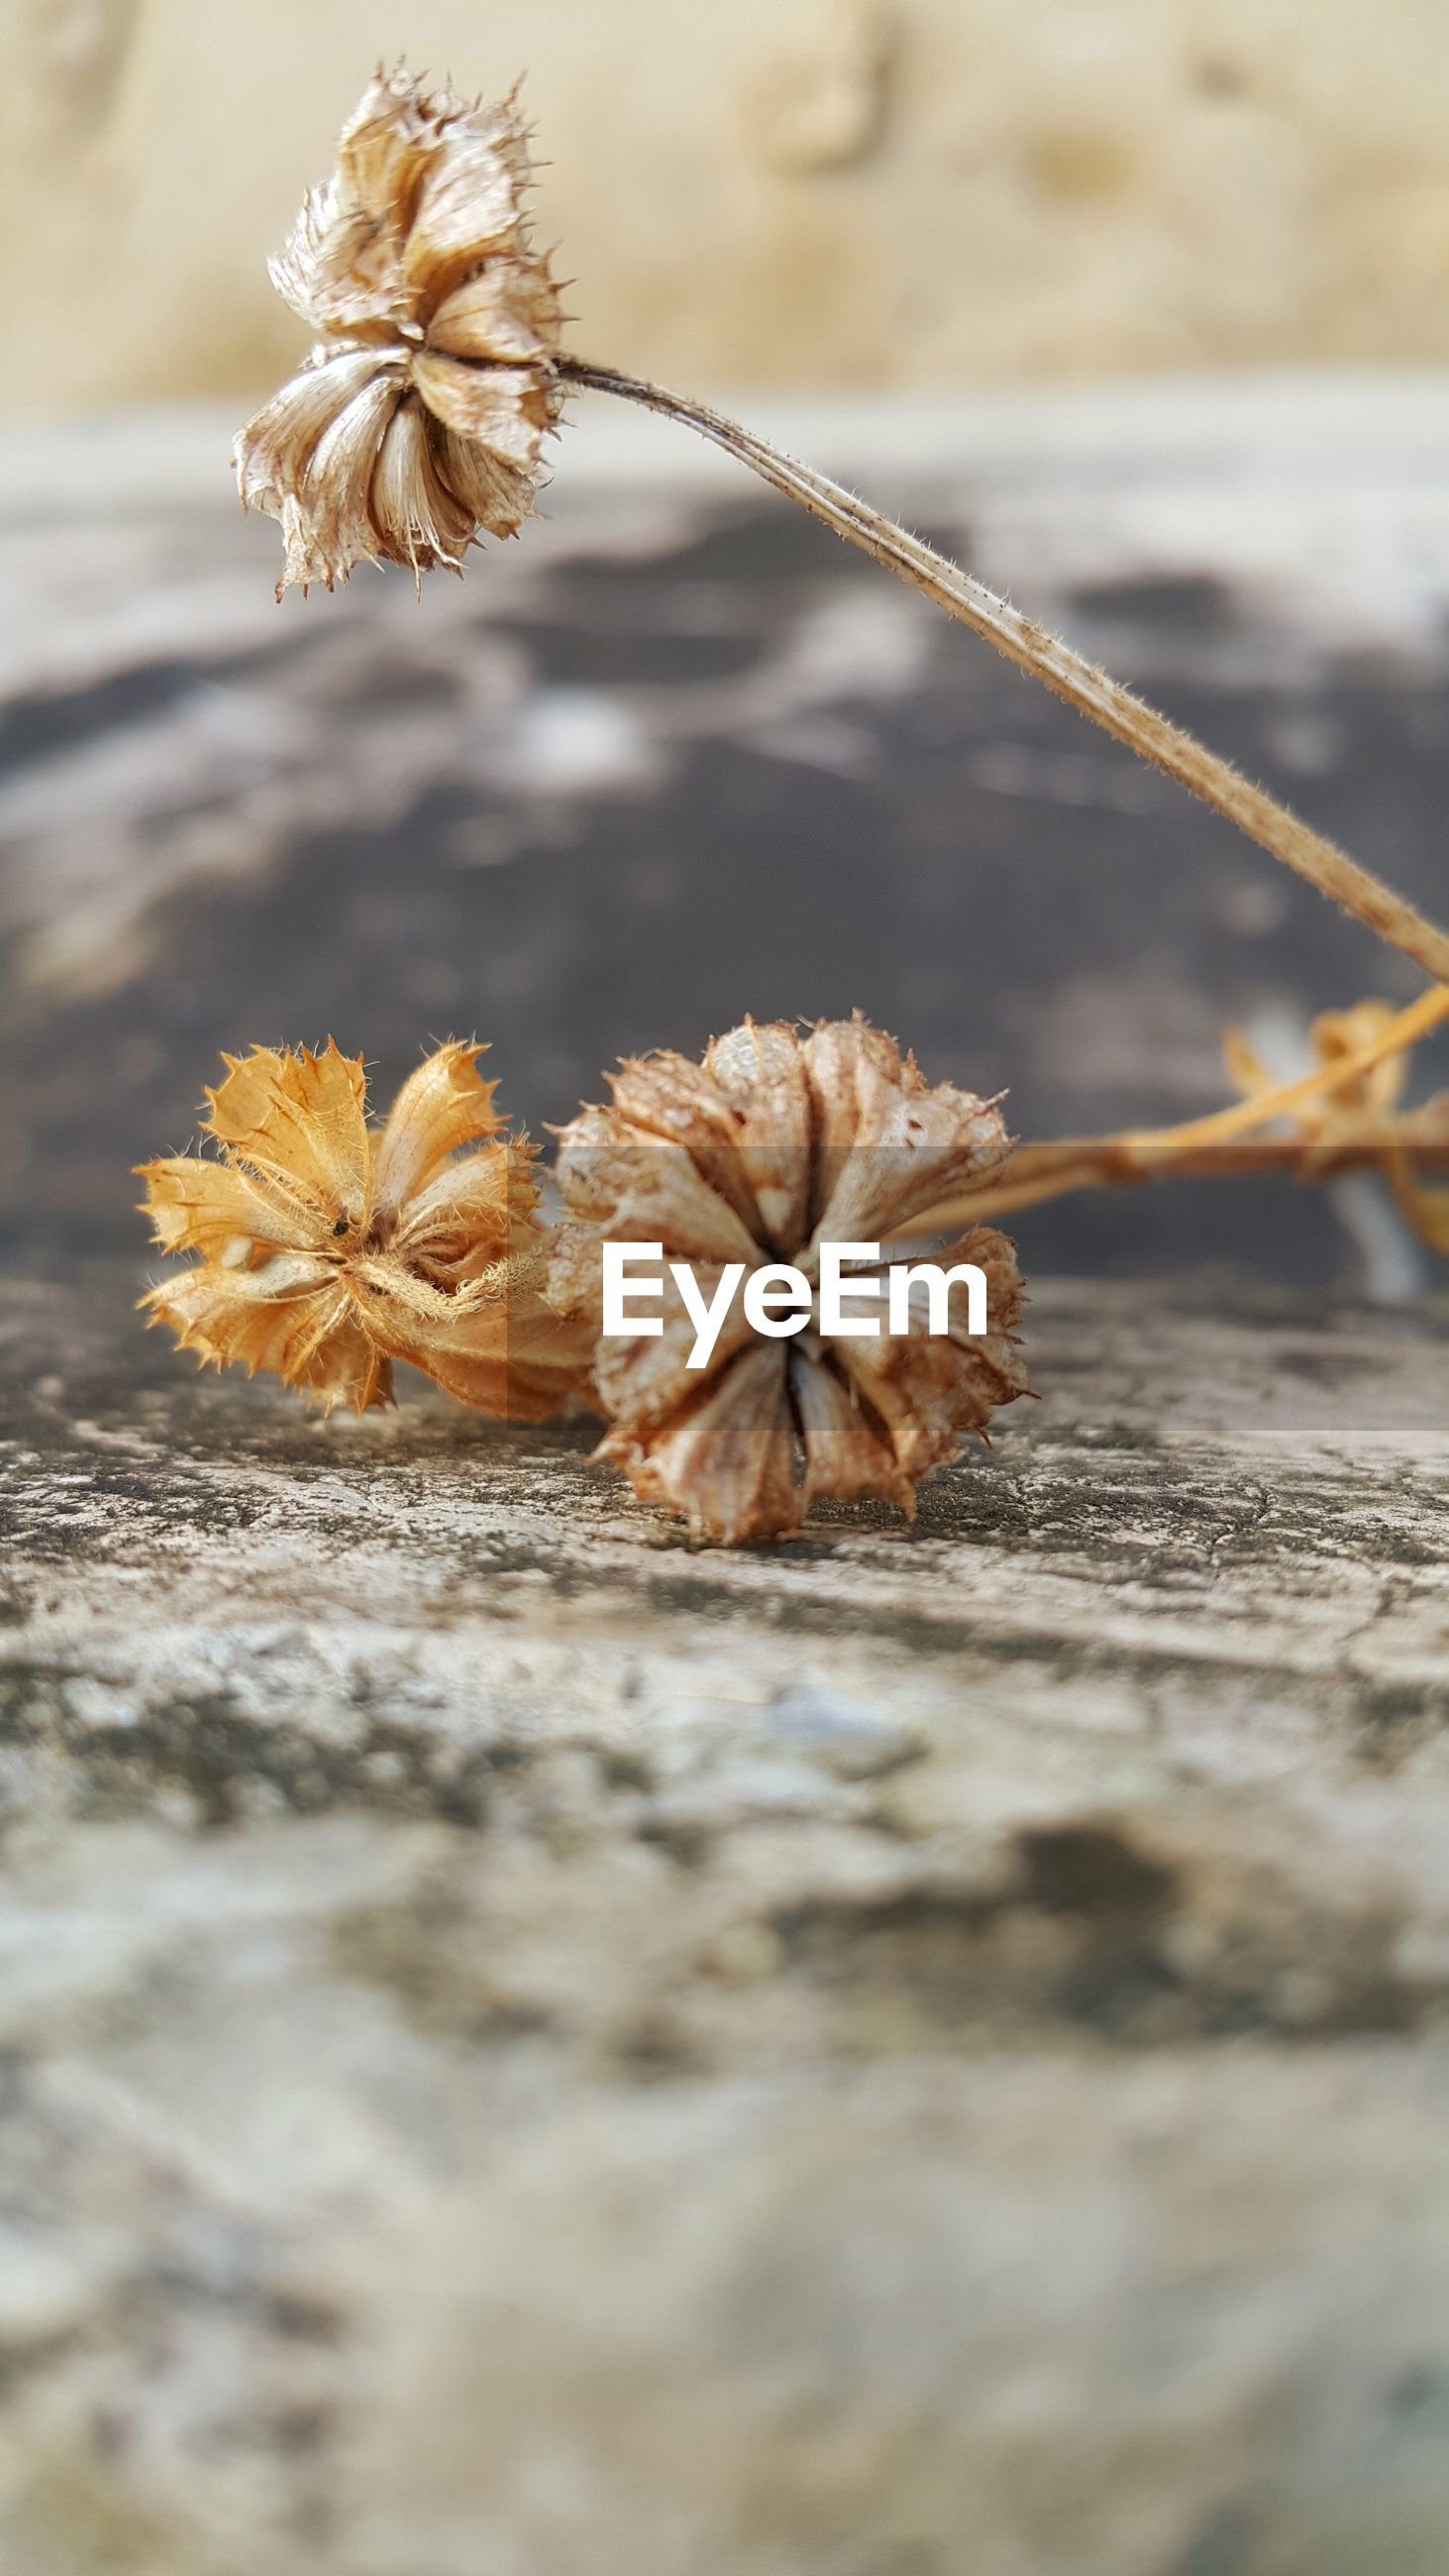 flower, fragility, close-up, focus on foreground, dry, nature, freshness, selective focus, plant, beauty in nature, stem, growth, season, yellow, water, petal, outdoors, no people, dead plant, day